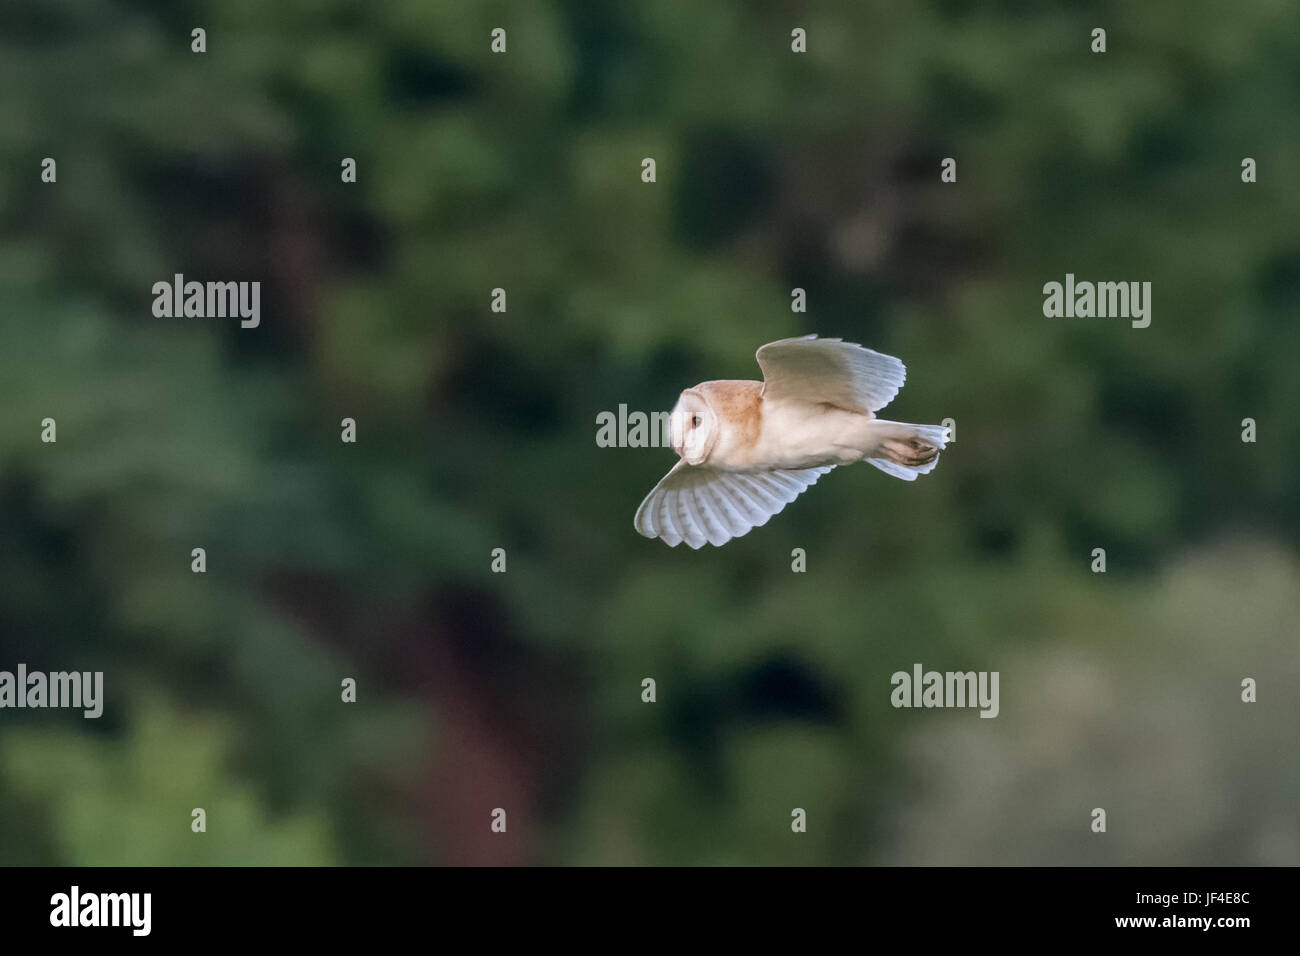 Side view of a single Barn Owl (Tyto alba) flying across green background - Stock Image